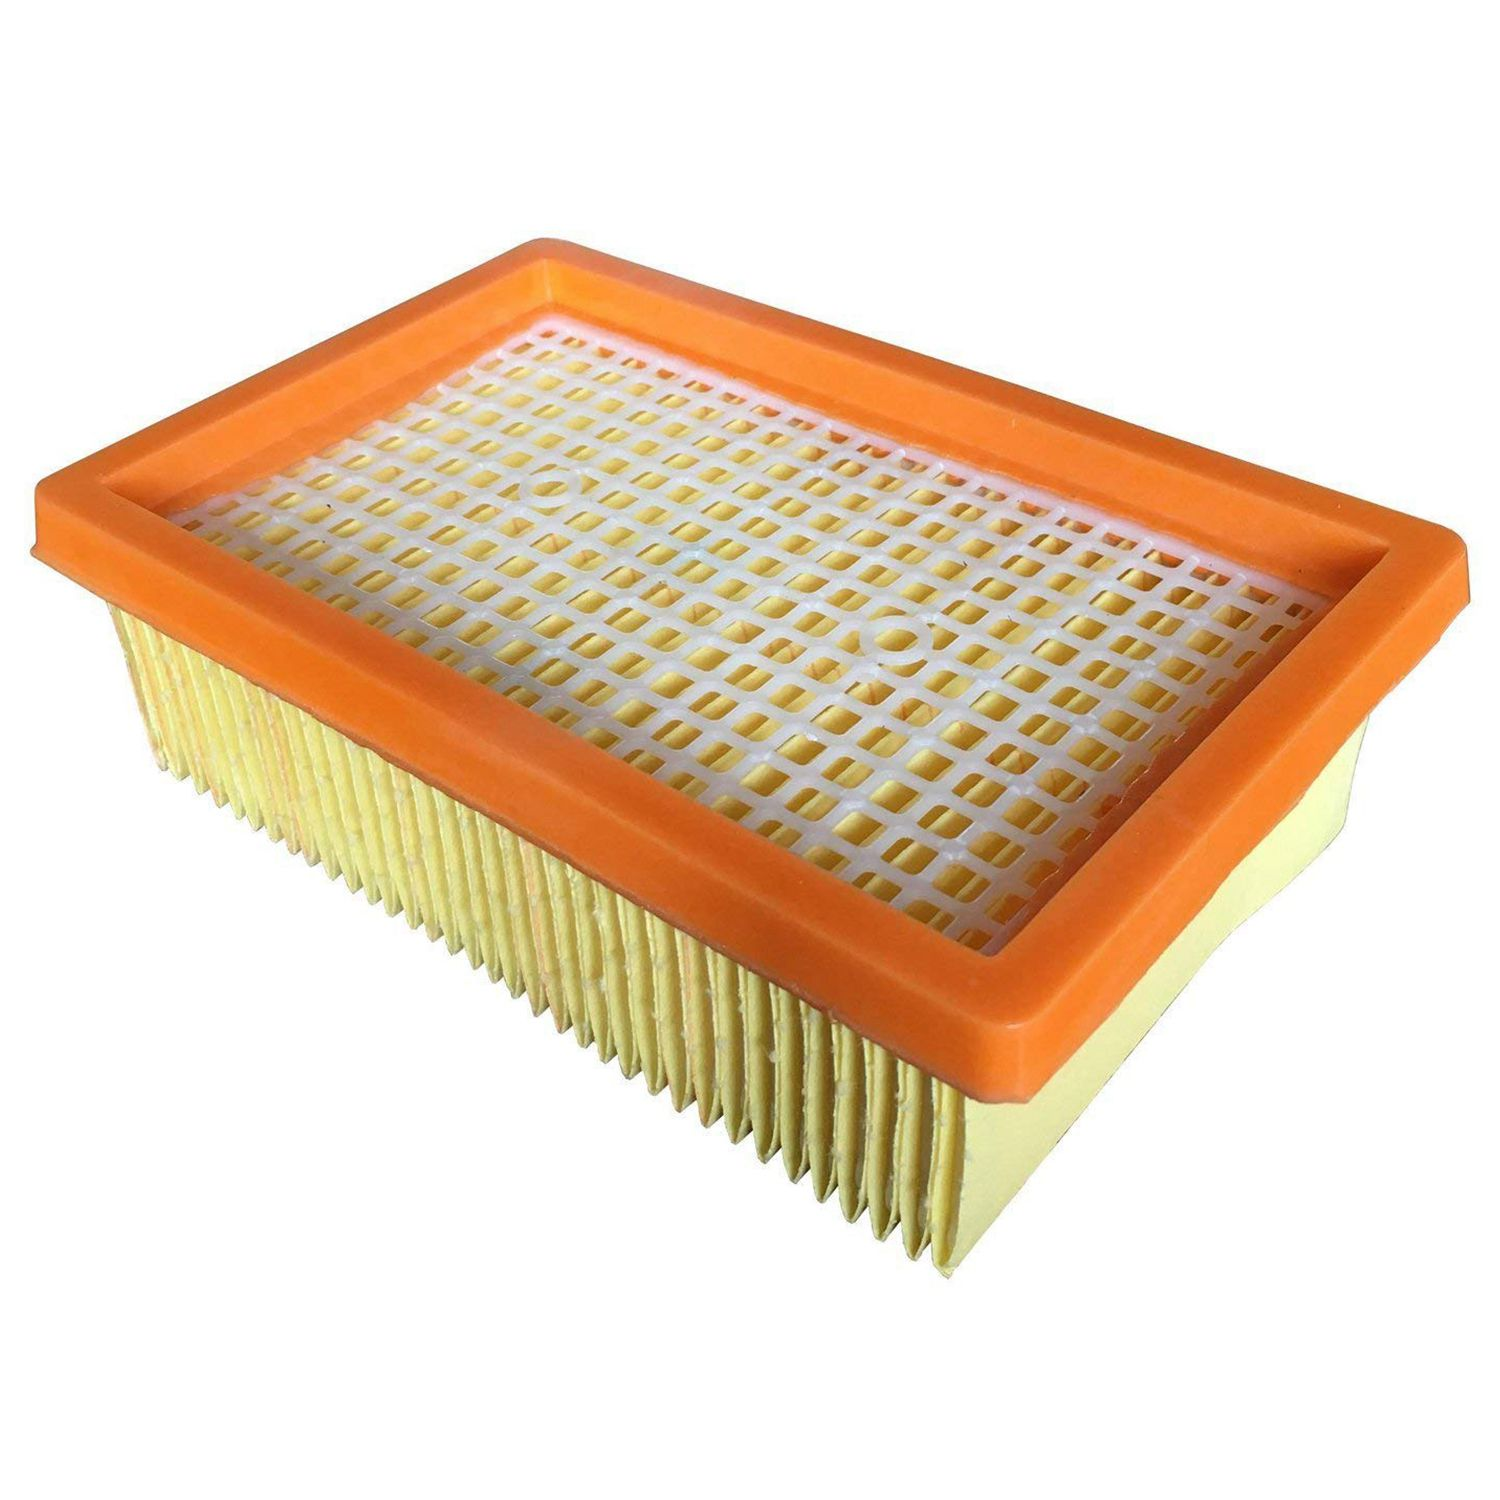 Best Sell Vacuum Cleaner Hepa Filter Replacement For KARCHER Flat-Pleated MV4 MV5 MV6 WD4 WD5 WD6 P PREMIUM WD5 цена